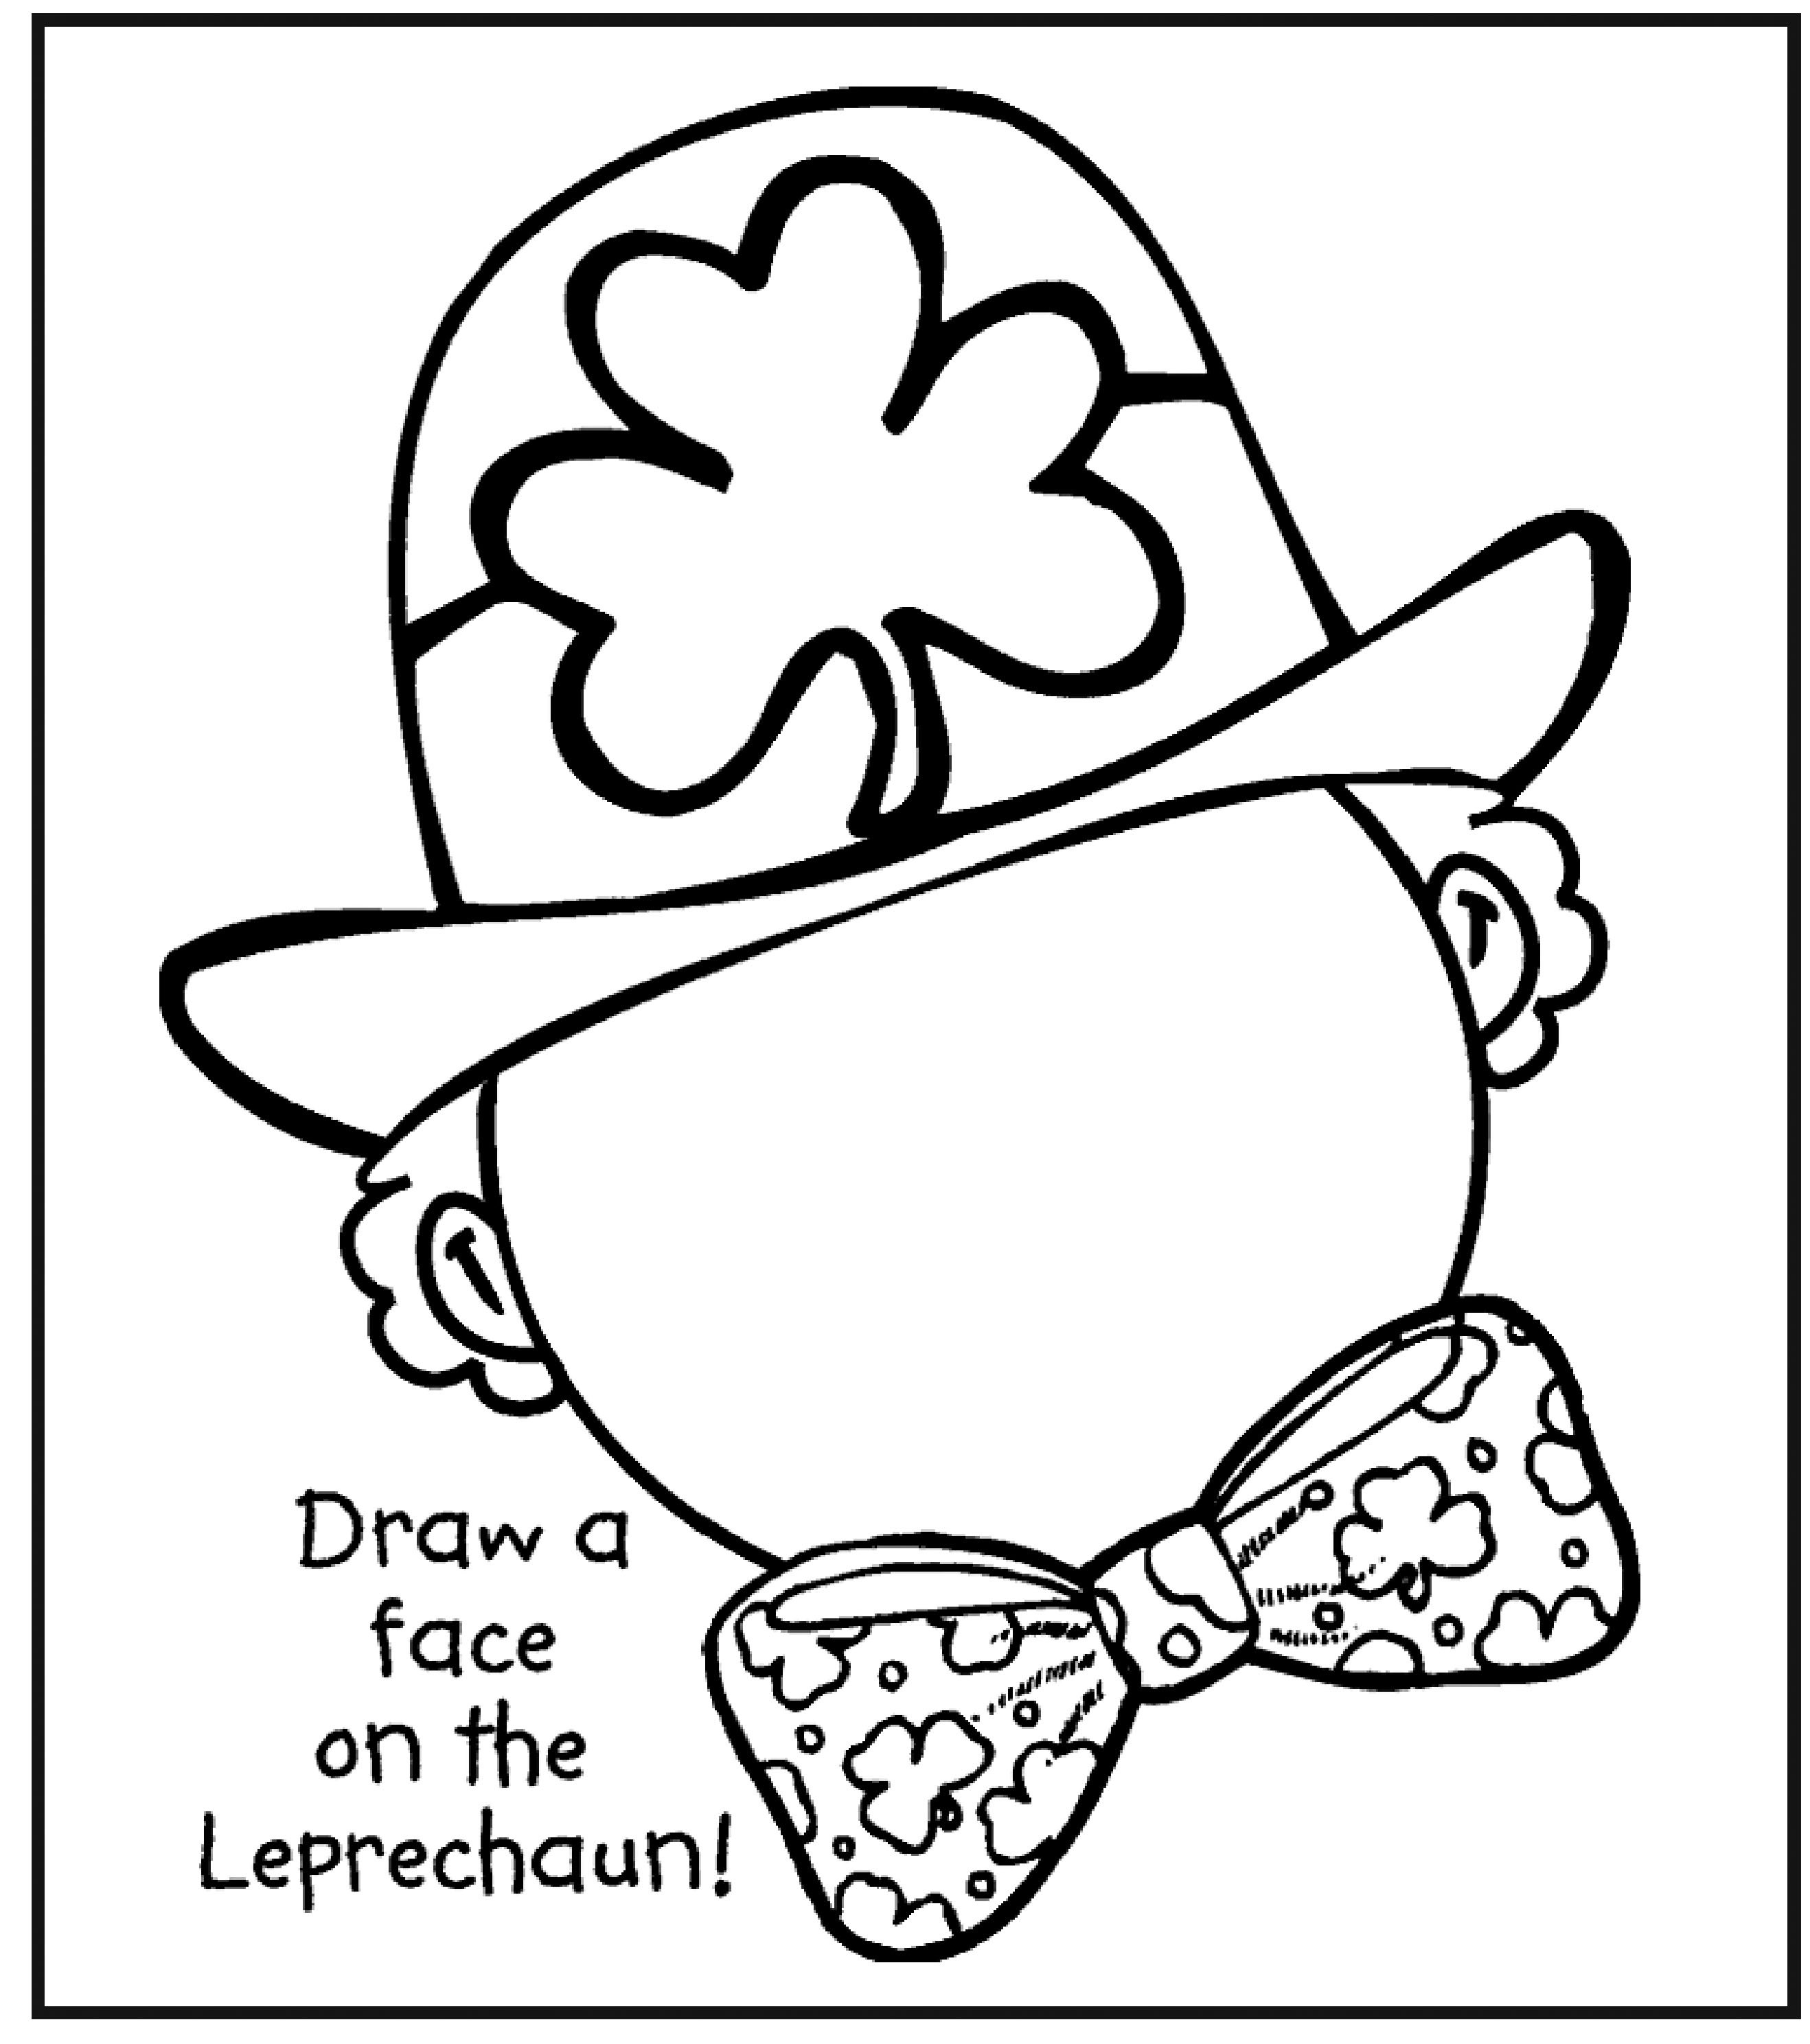 Printable St Patricks Day Coloring Pages 12 #19541 - Free Printable St Patrick Day Coloring Pages